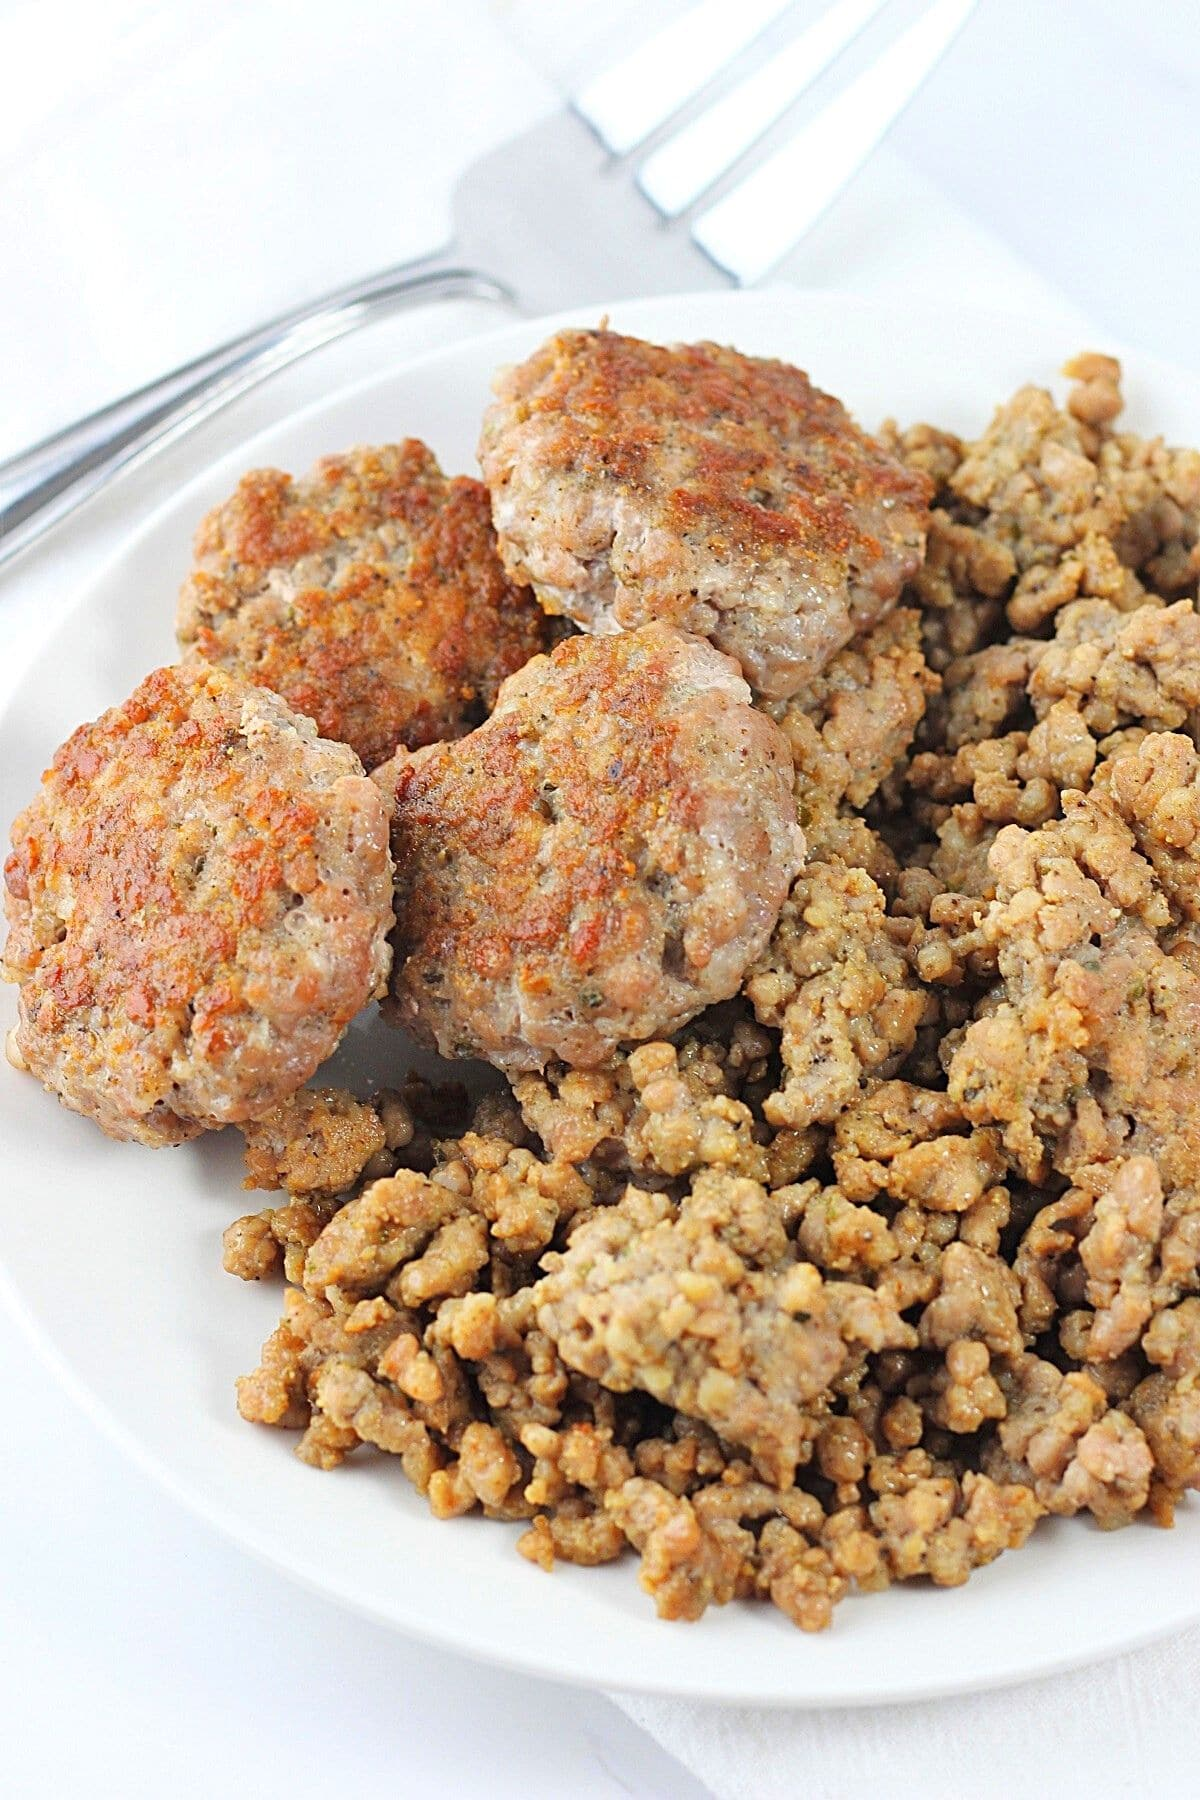 homemade breakfast sausage patties and crumbles on a white plate